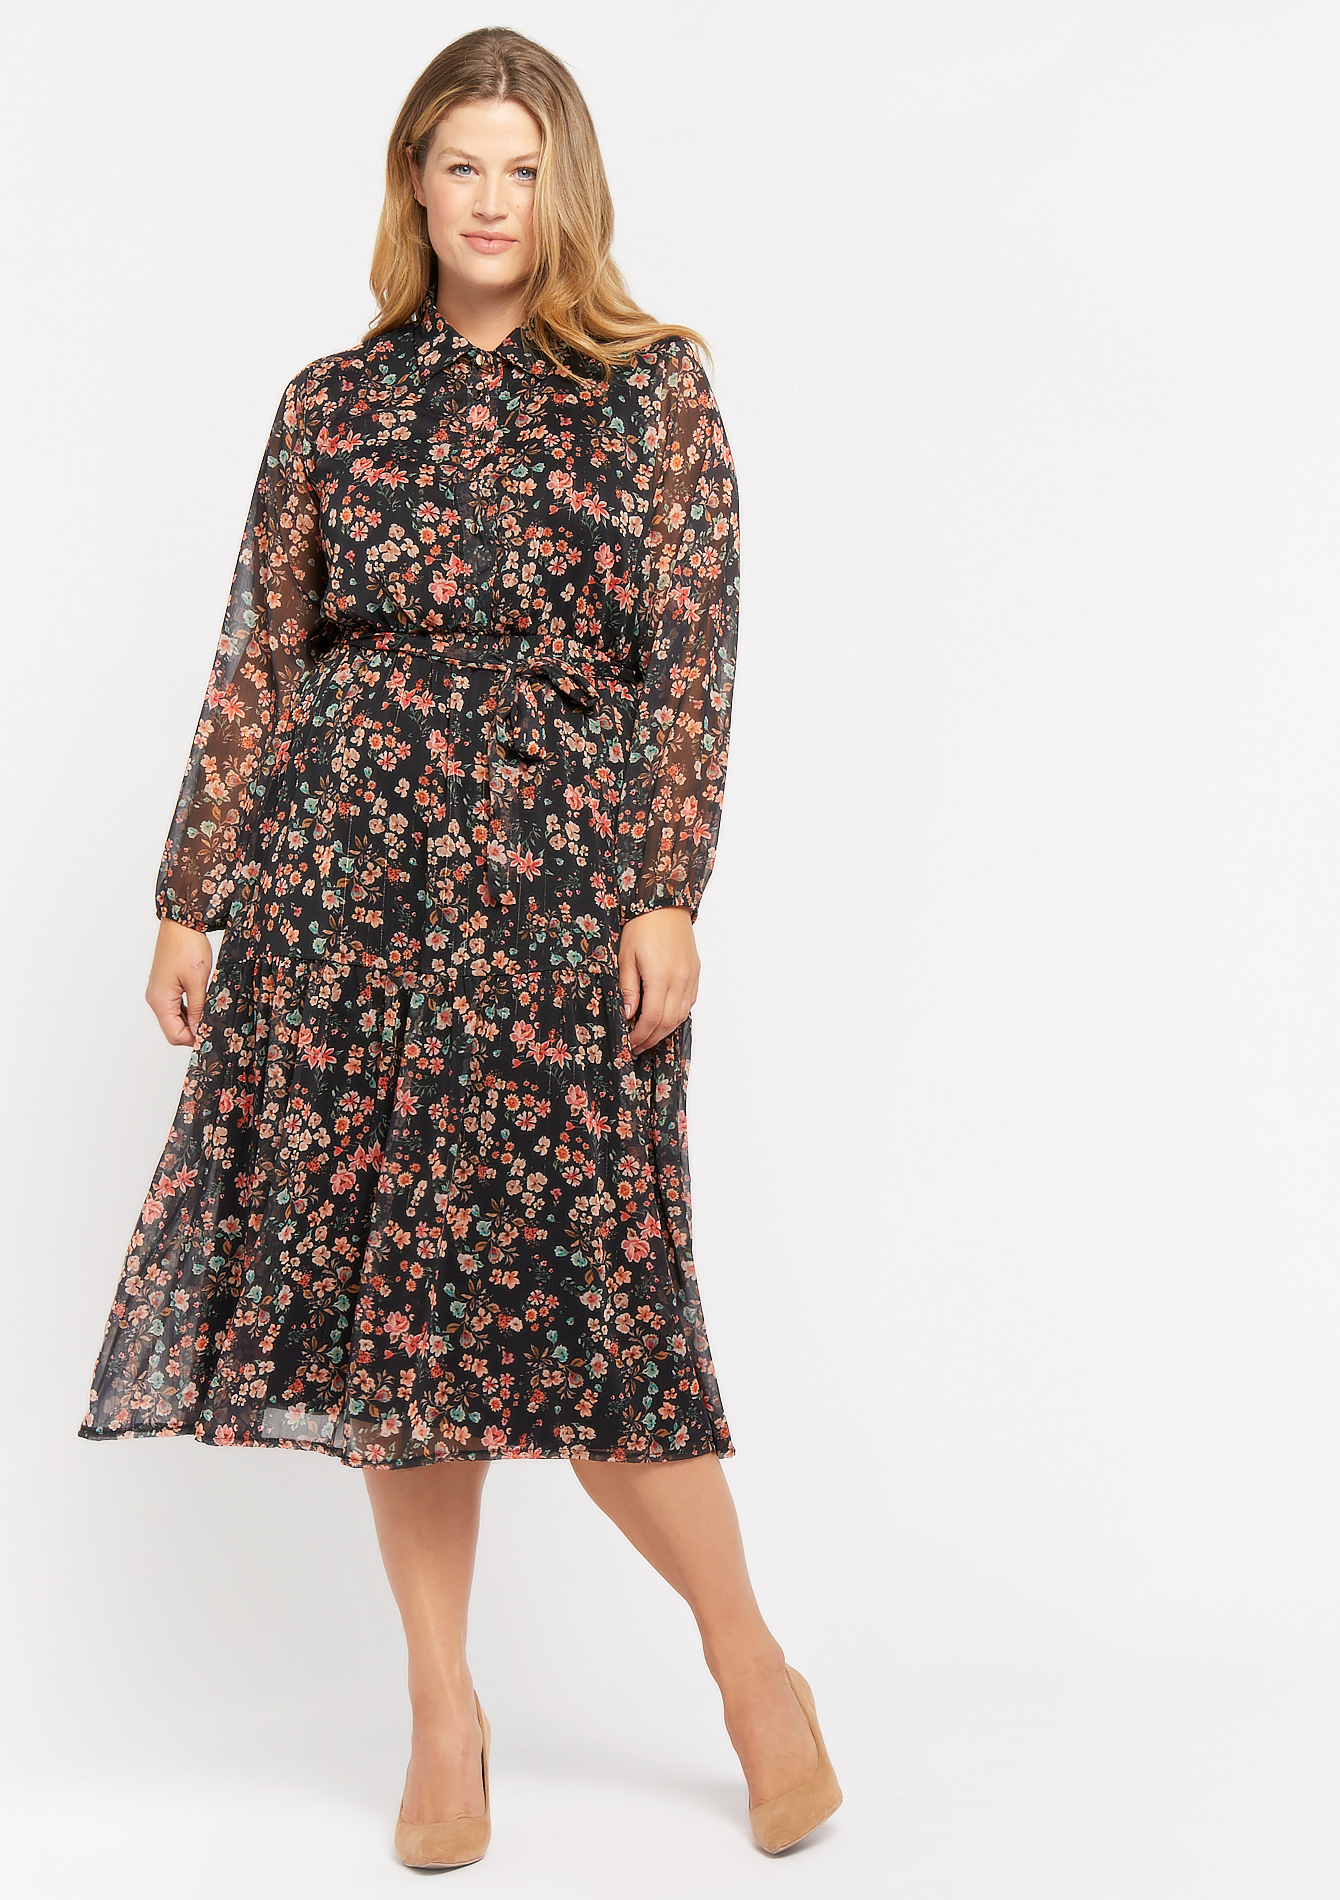 Maxi hemdjurk met bloemenprint - BLACK BEAUTY - 08601230_2600